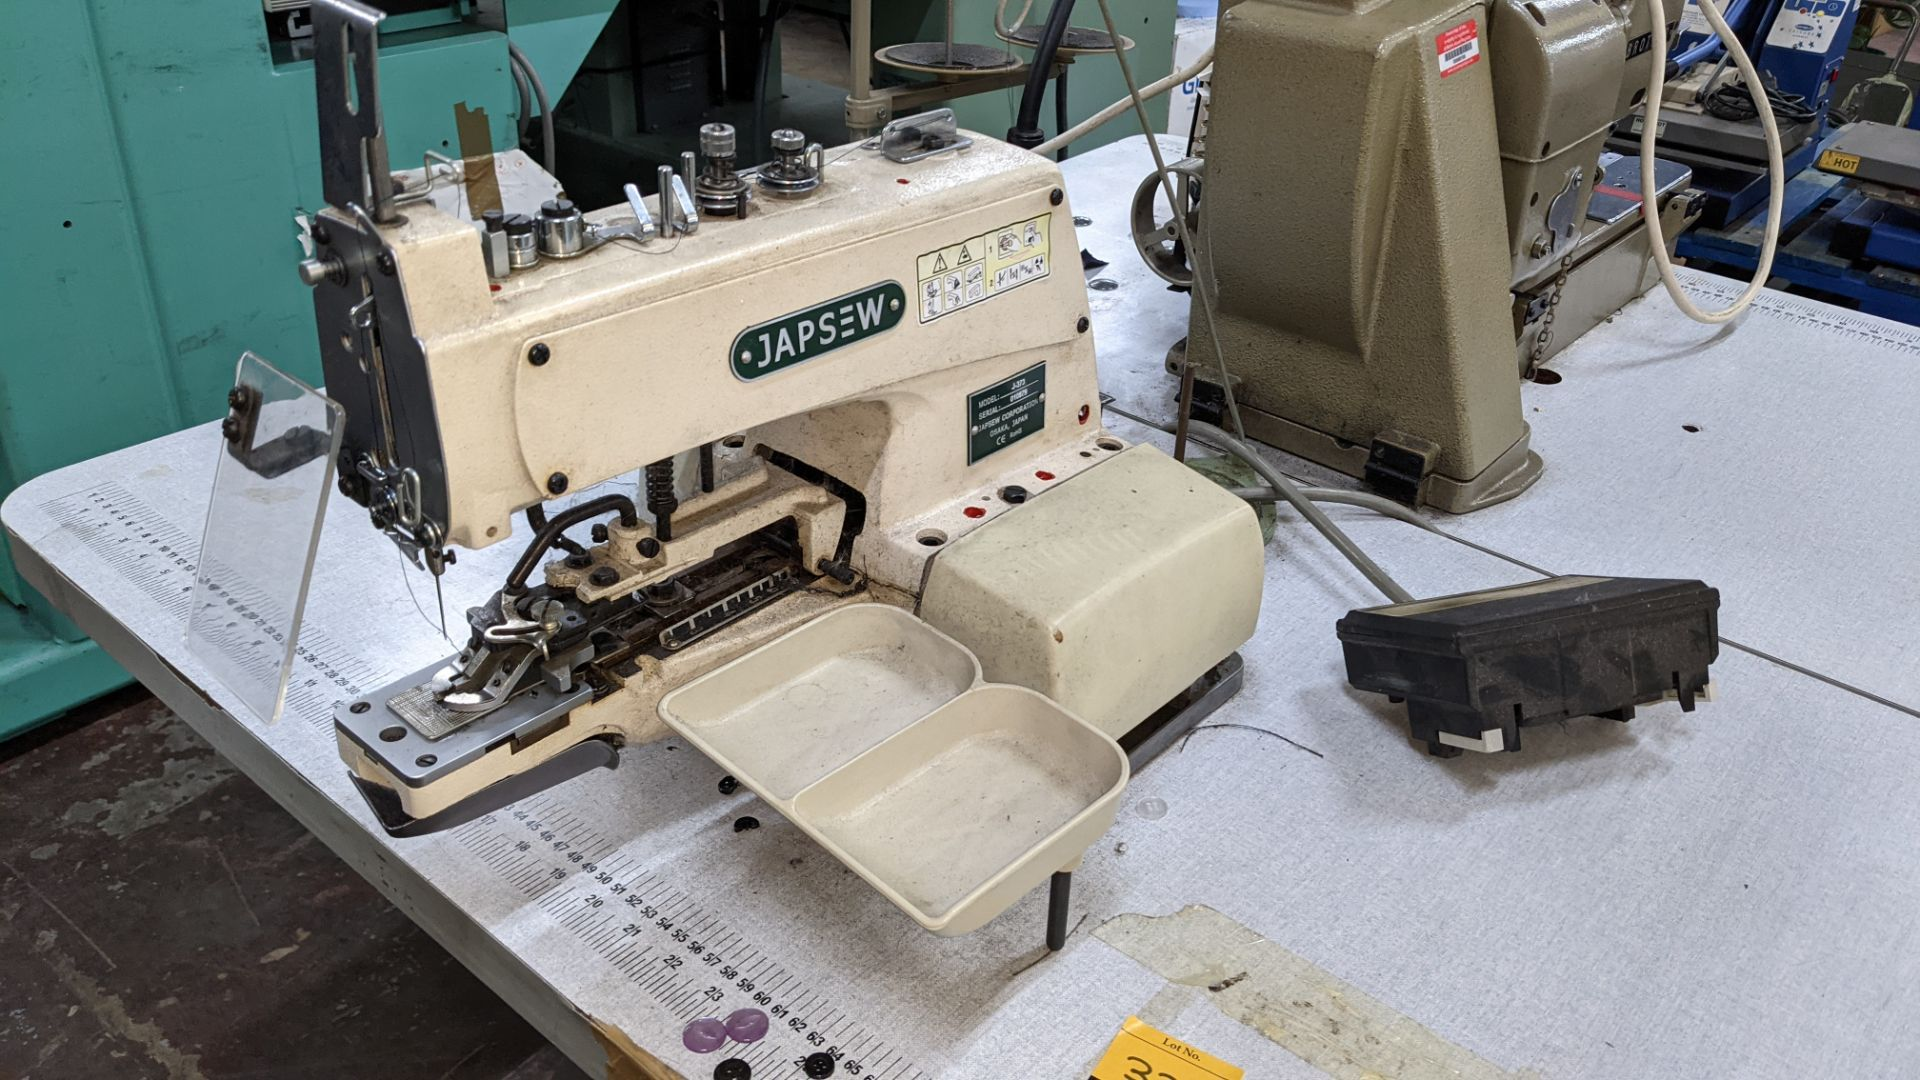 Japsew model J-373 button sewer - Image 5 of 15